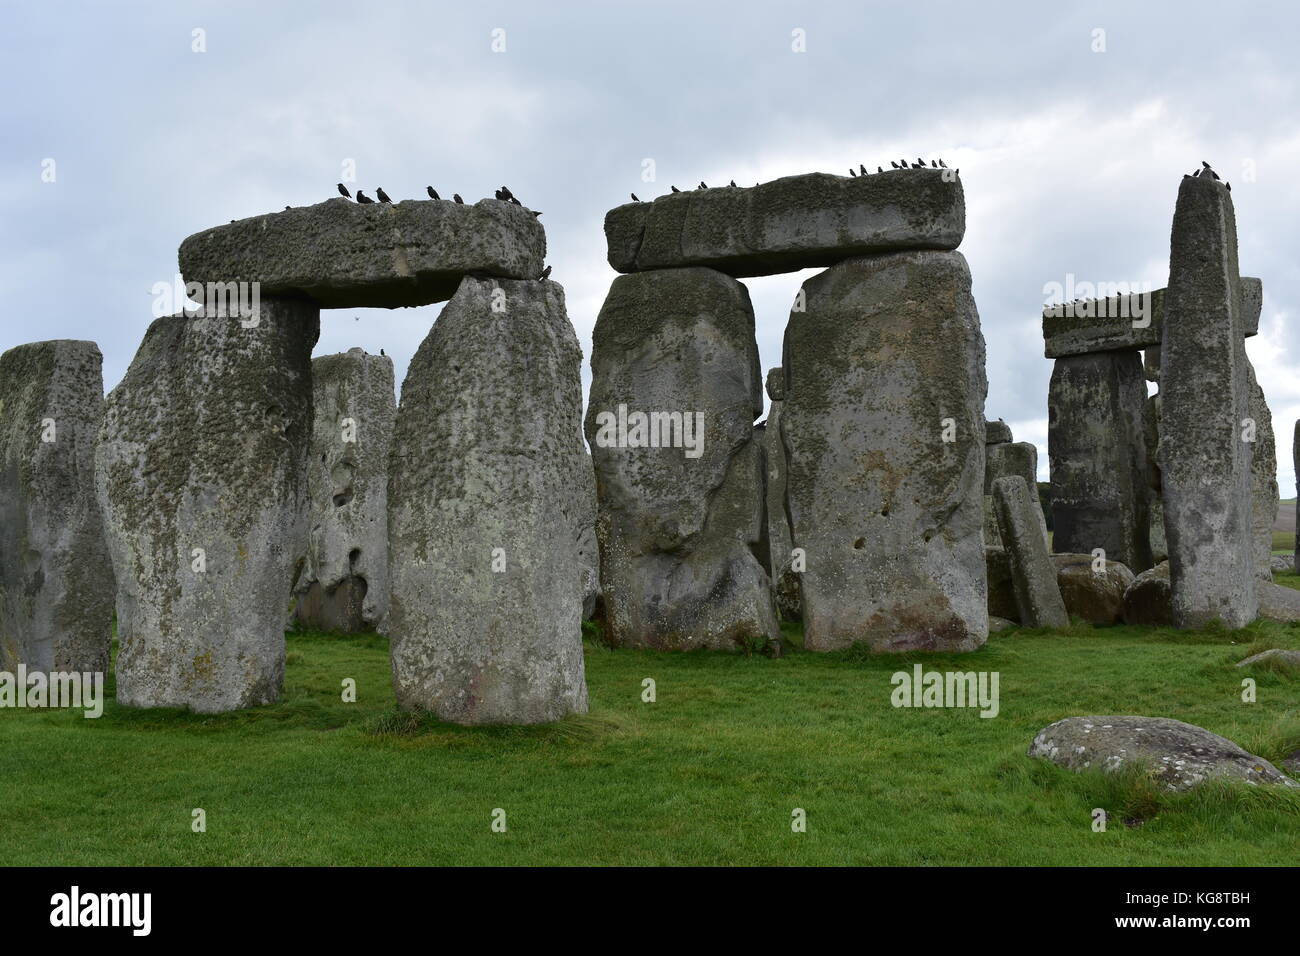 Birds on Stonehenge - Stock Image